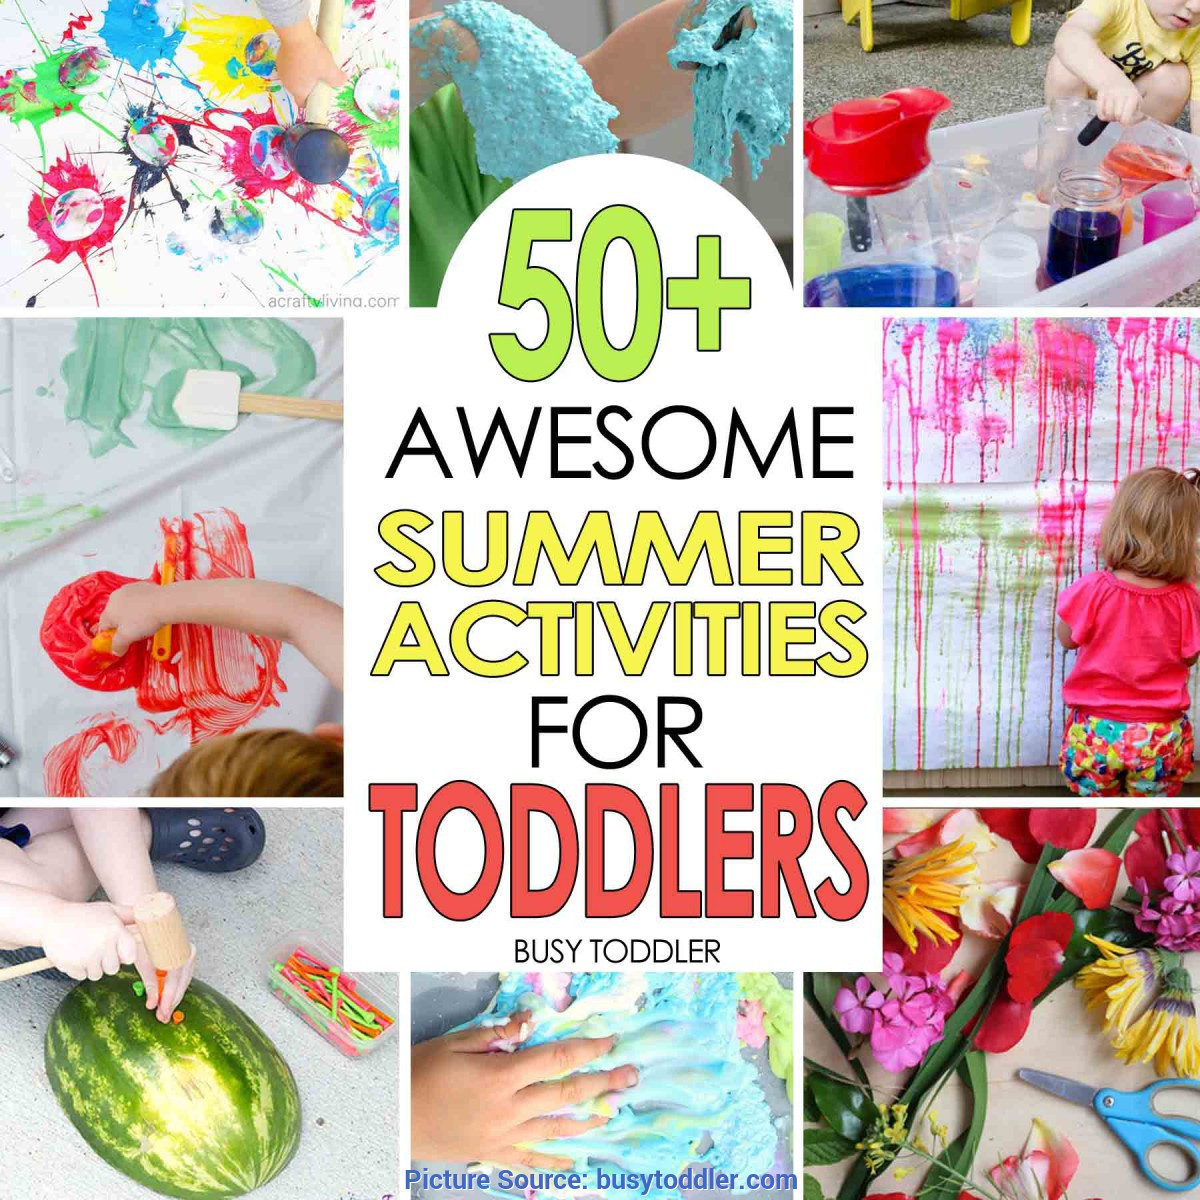 Unusual Lesson Plans For Toddlers Summer 50+ Awesome Summer Activities For Toddlers - Busy Tod